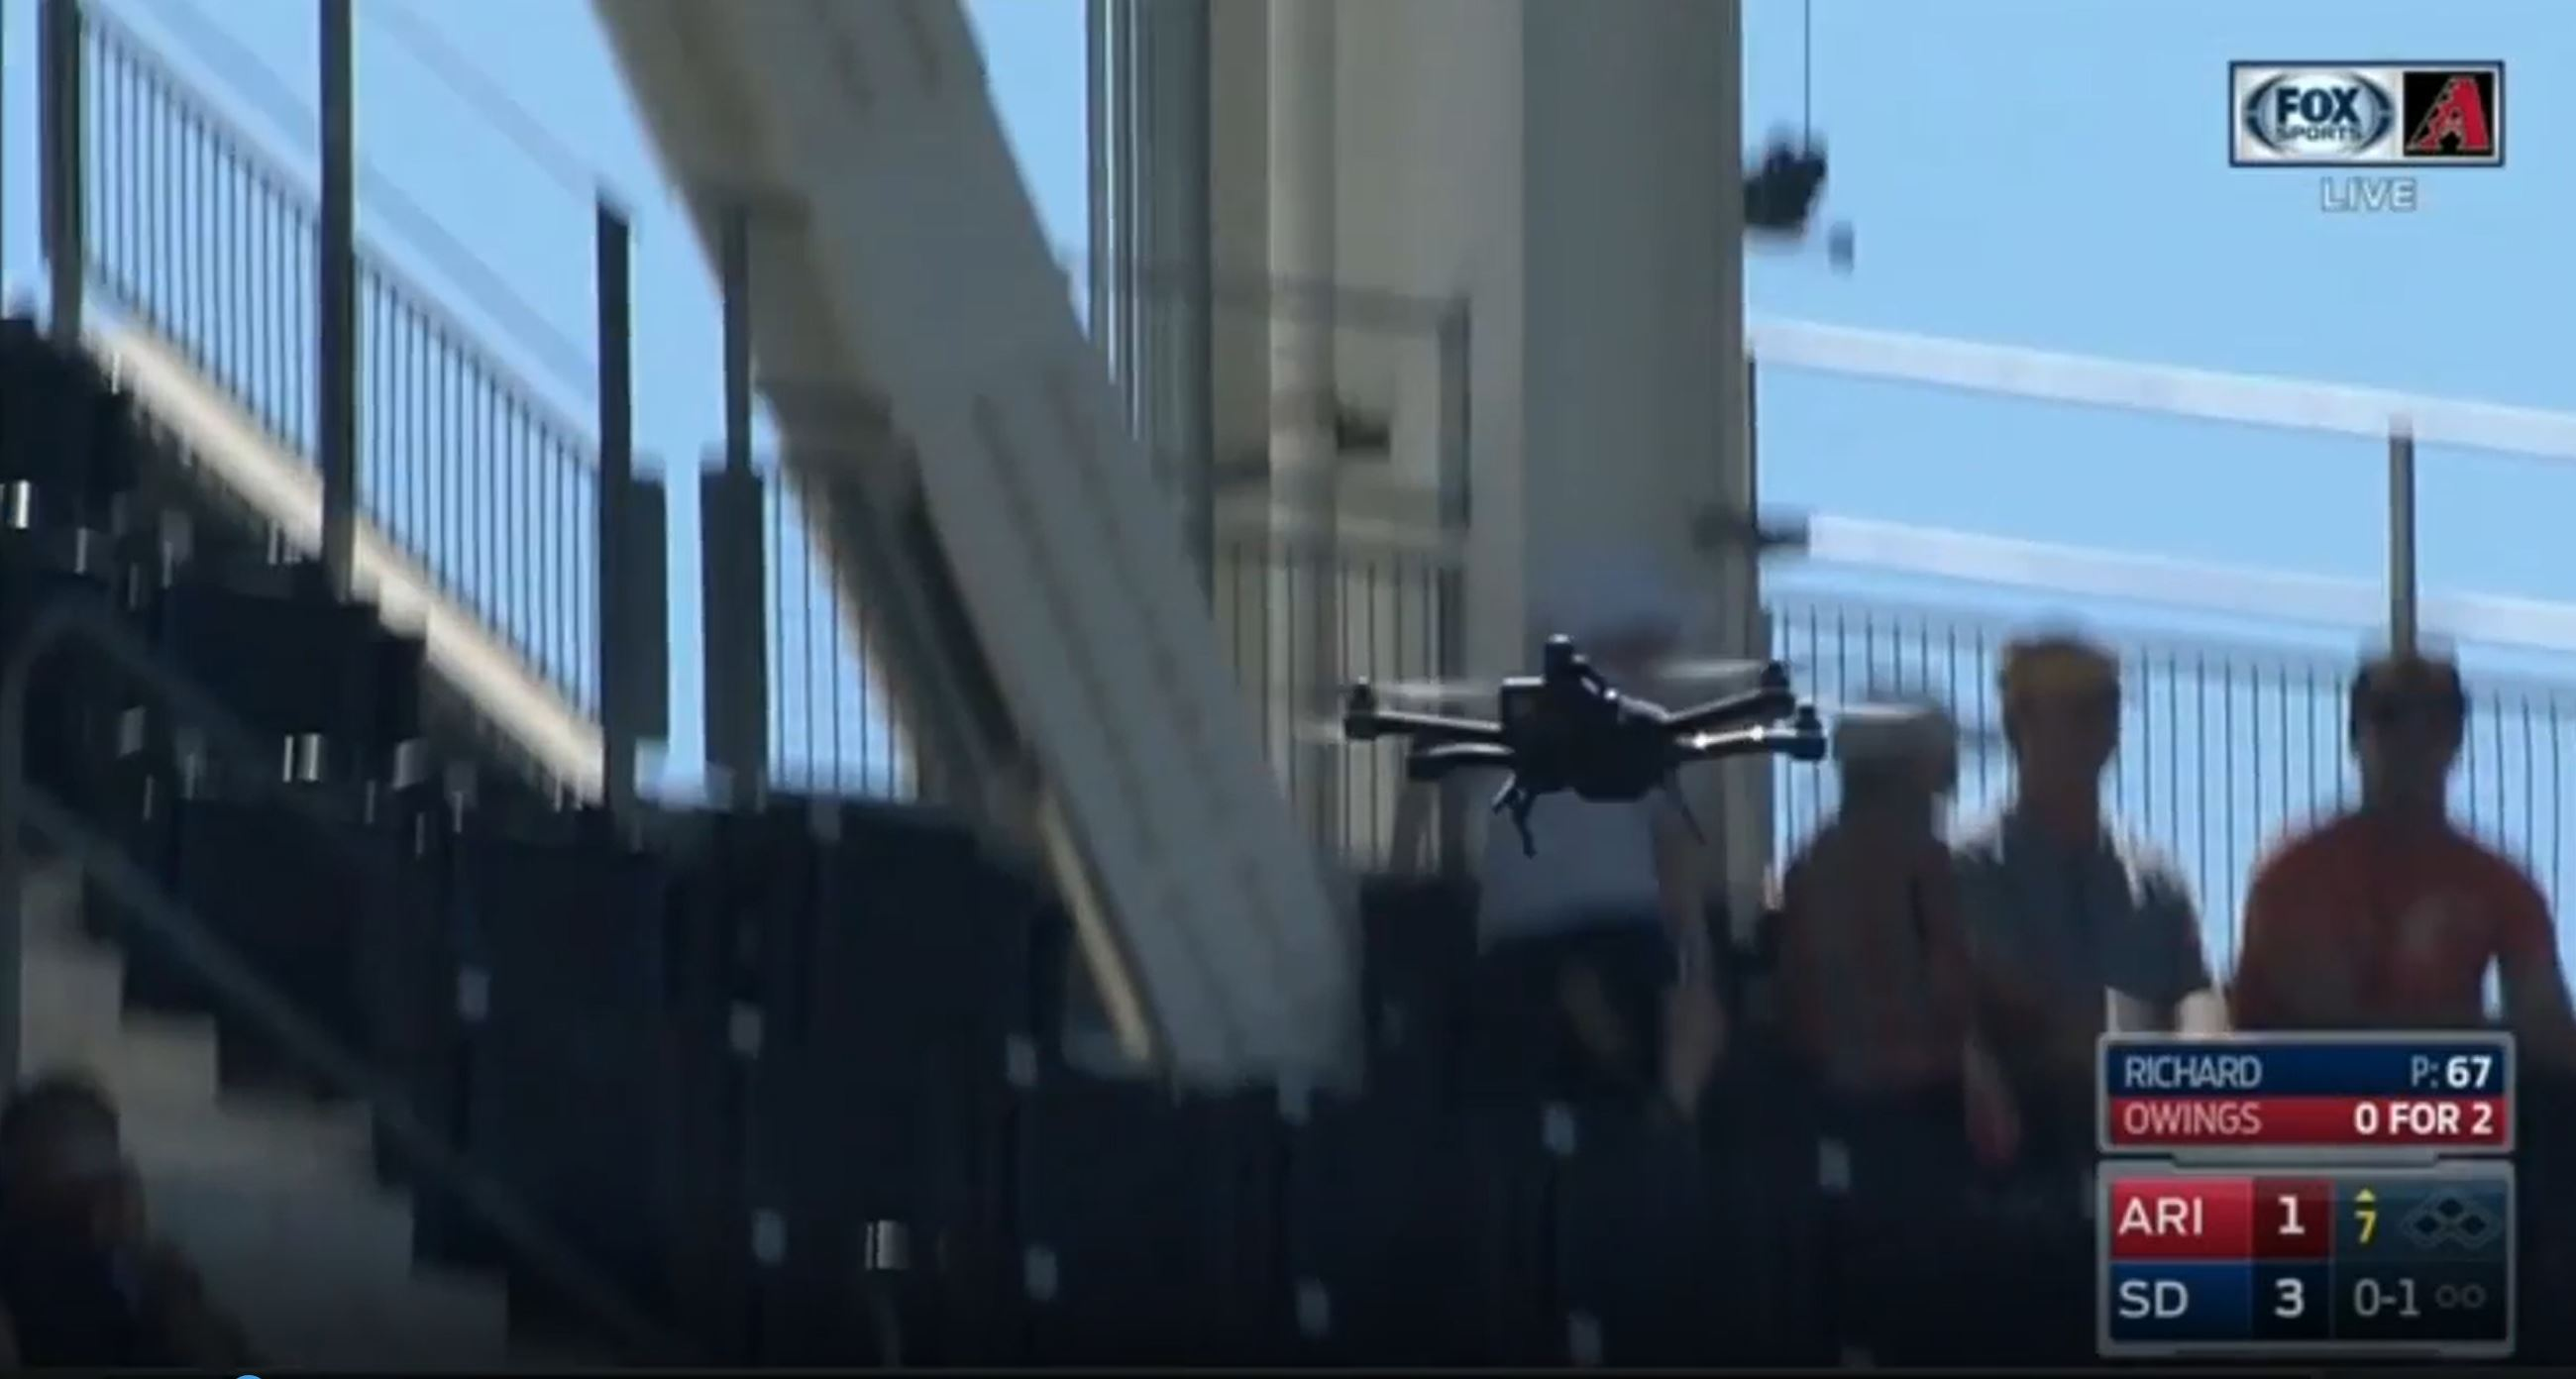 Drone crashes into spectators during Padres MLB game at Petco Park